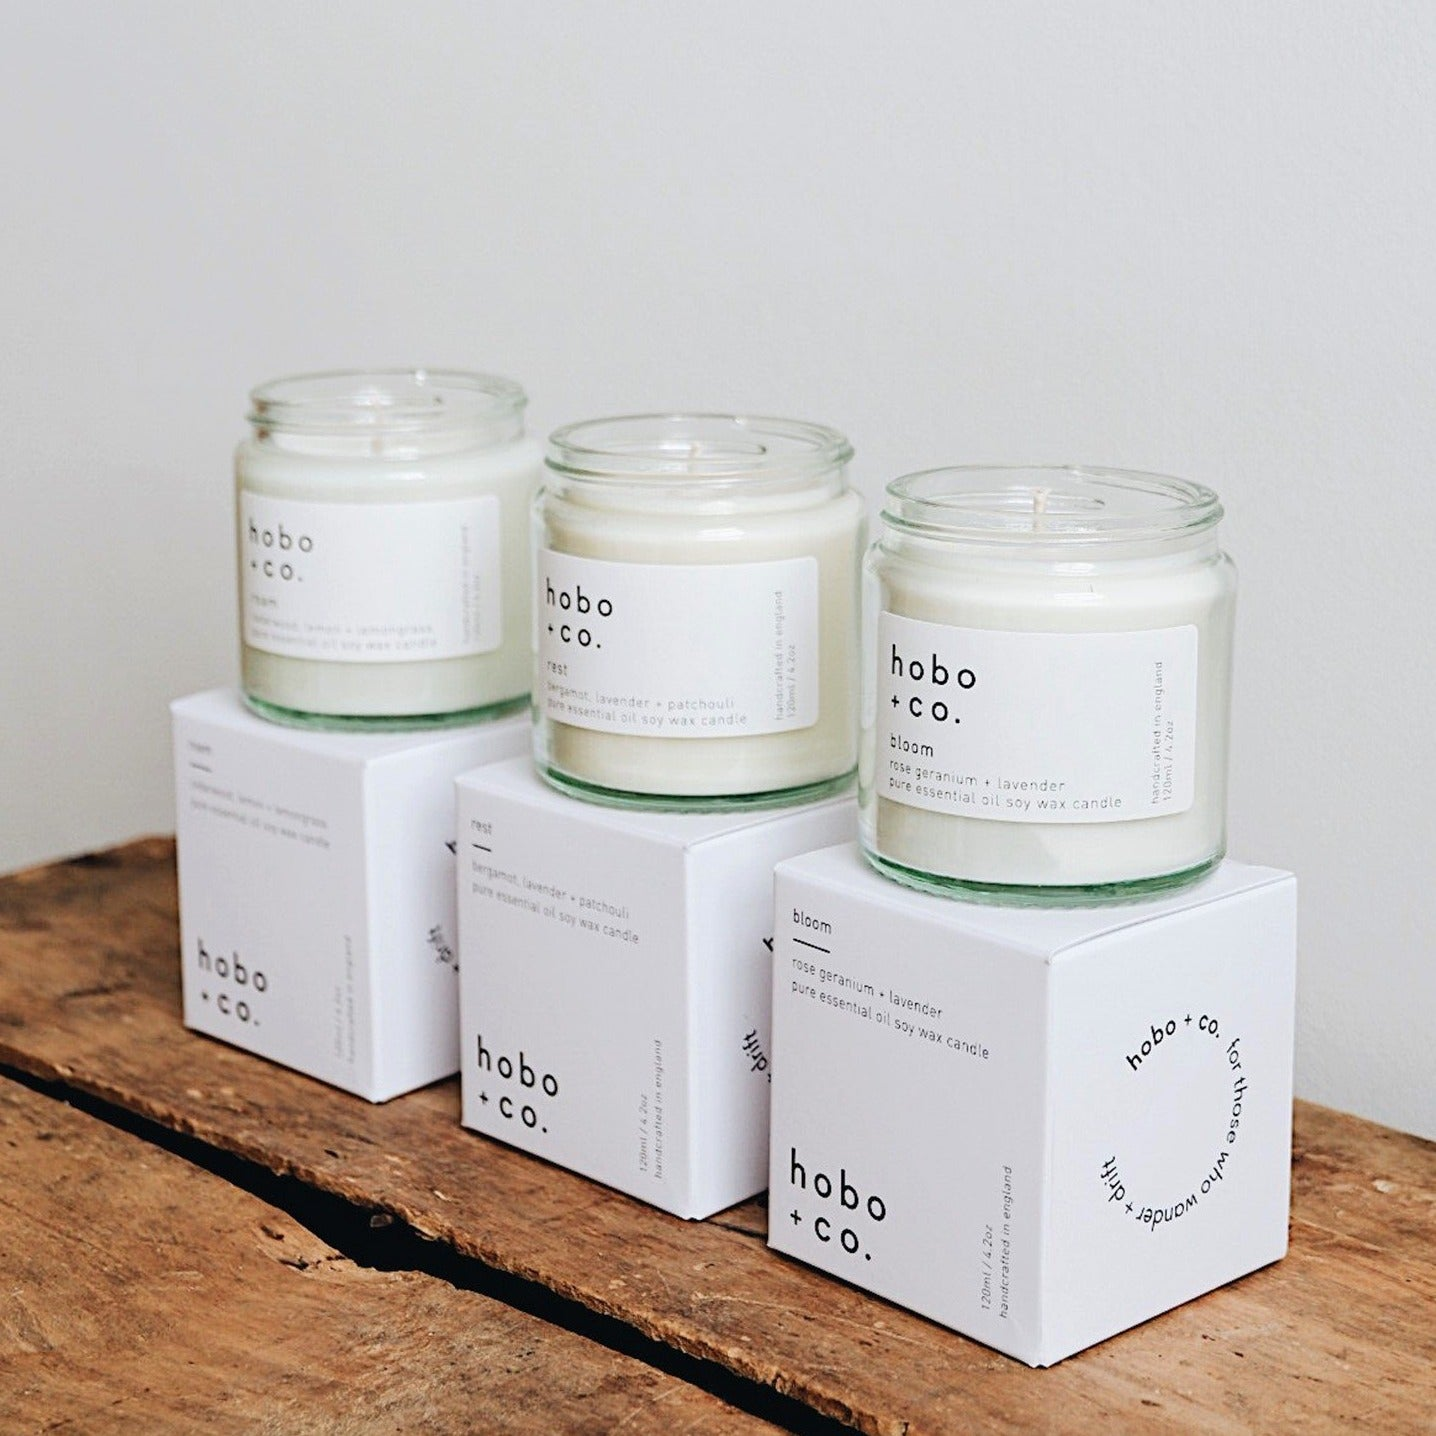 Hobo & Co Candle  - Roam - Decadorn